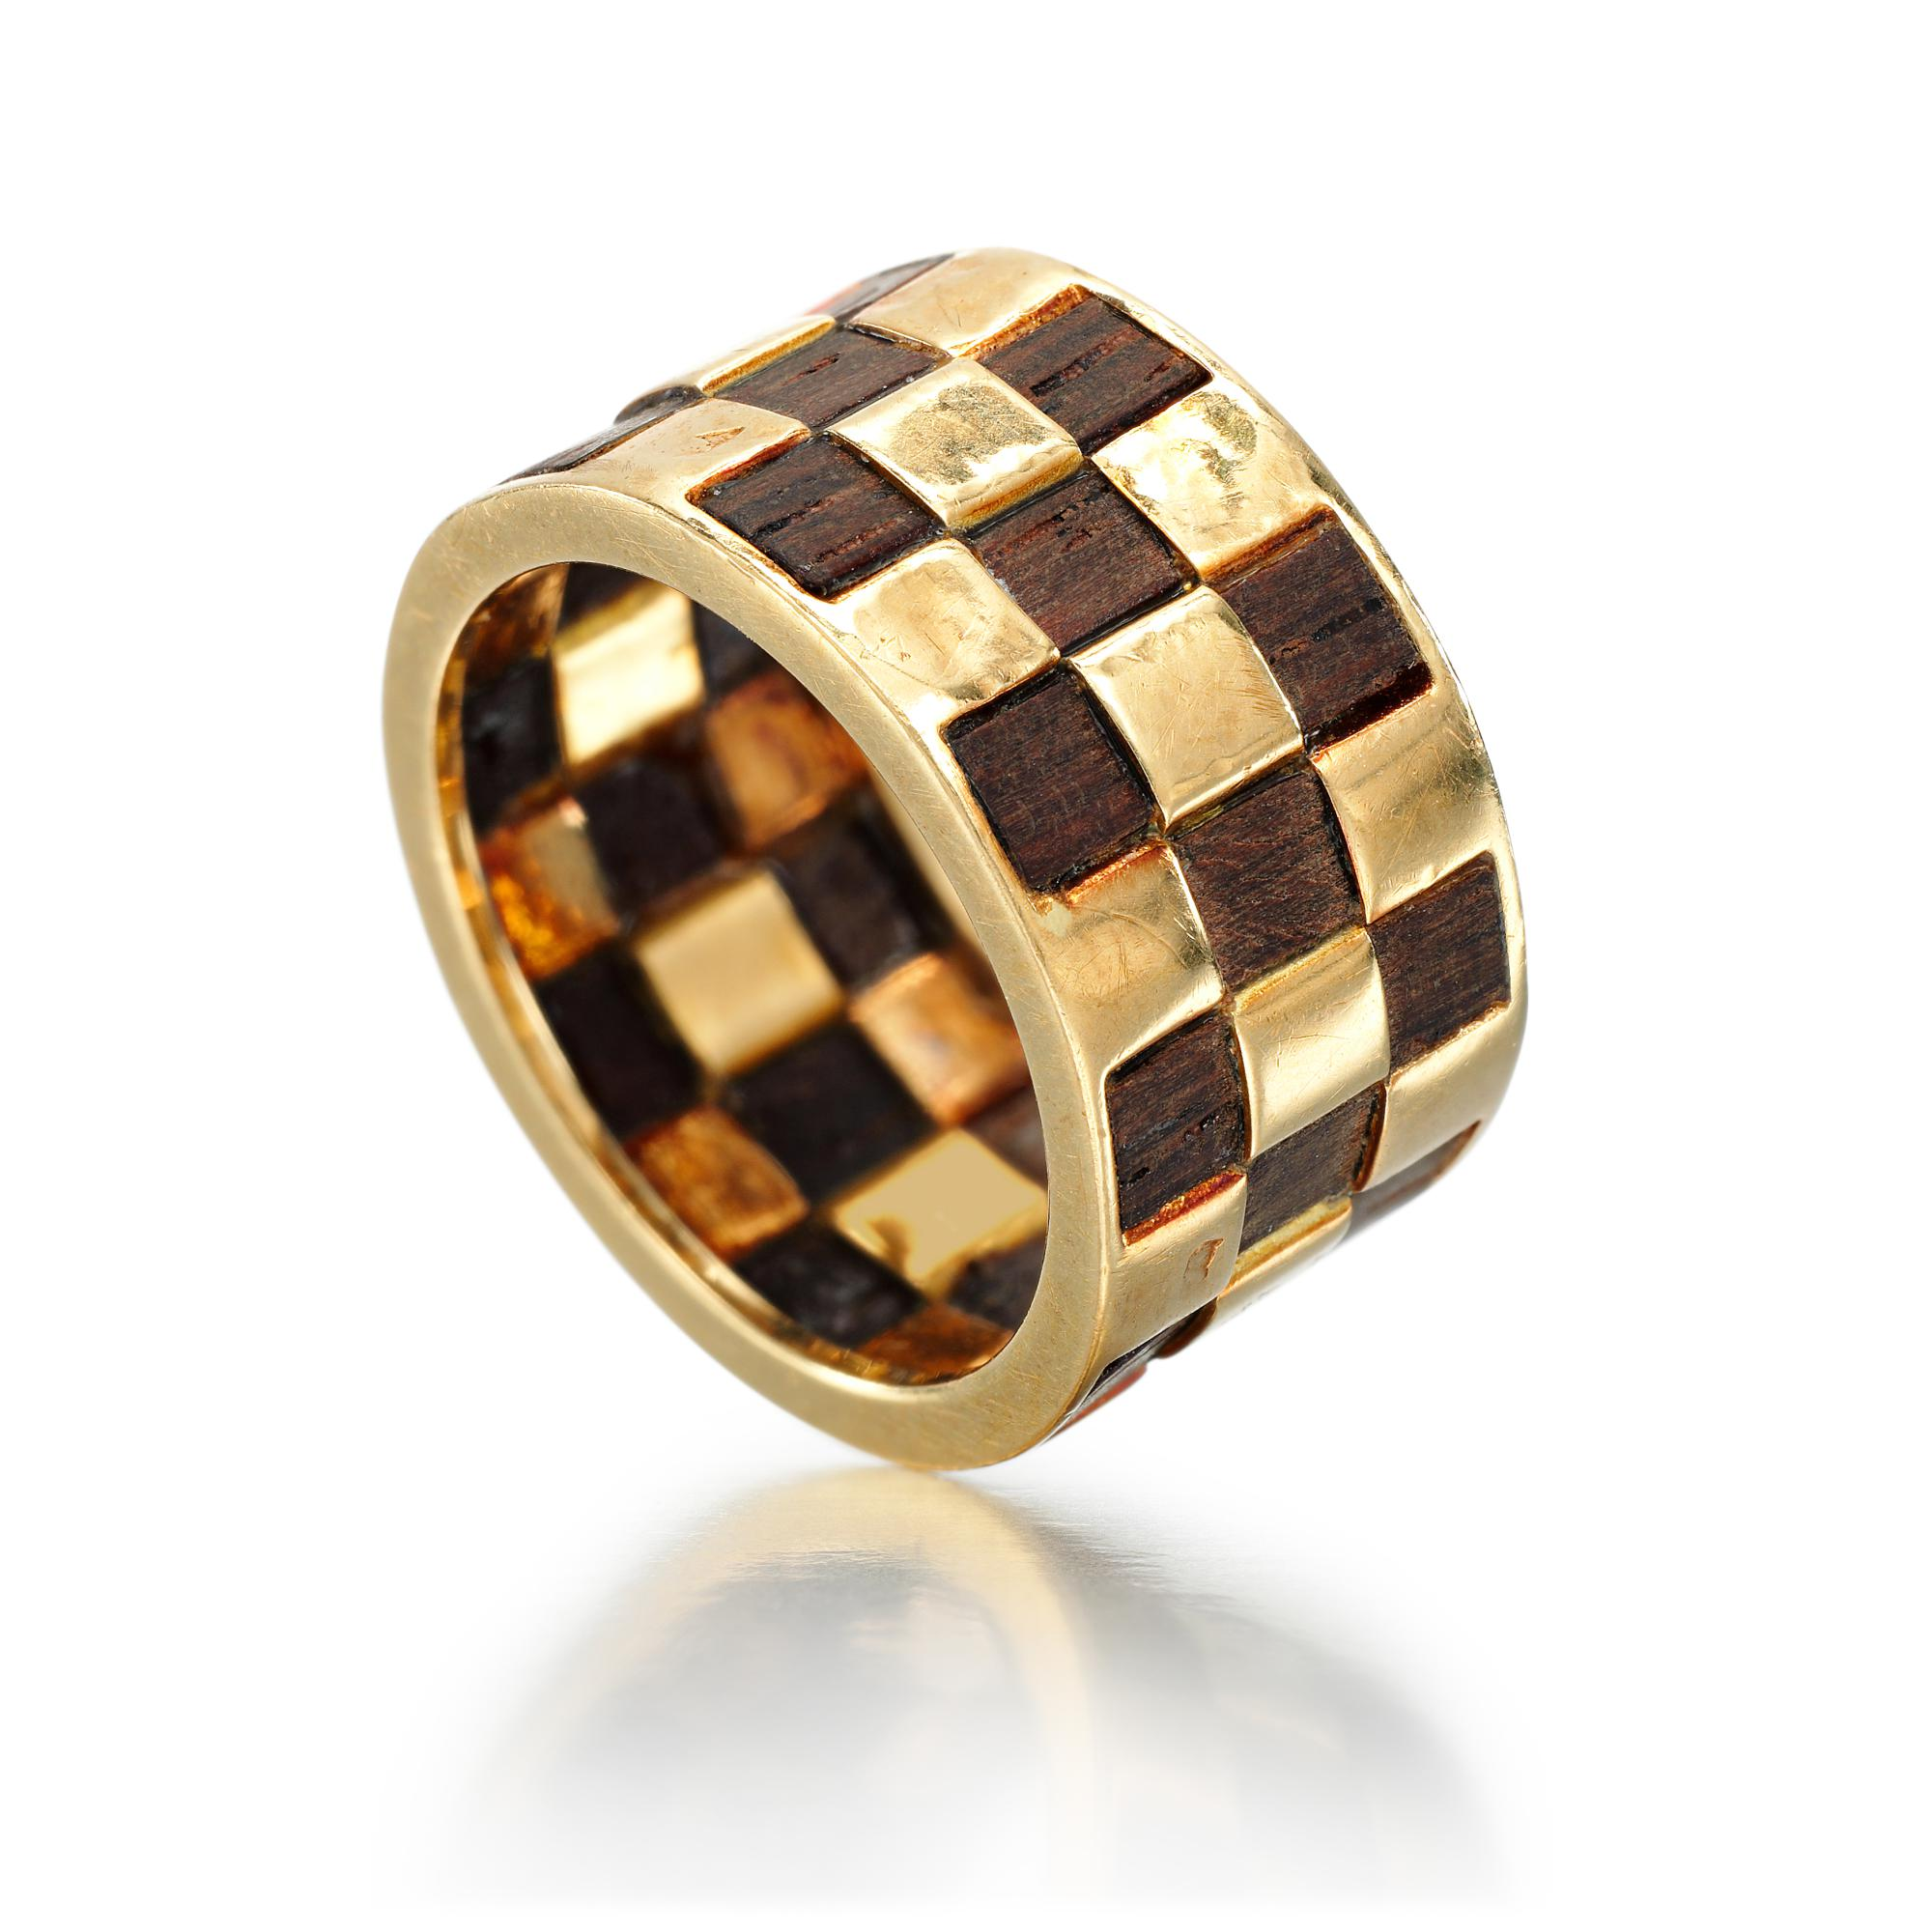 WOOD AND GOLD RING | VAN CLEEF & ARPELS, 1970S